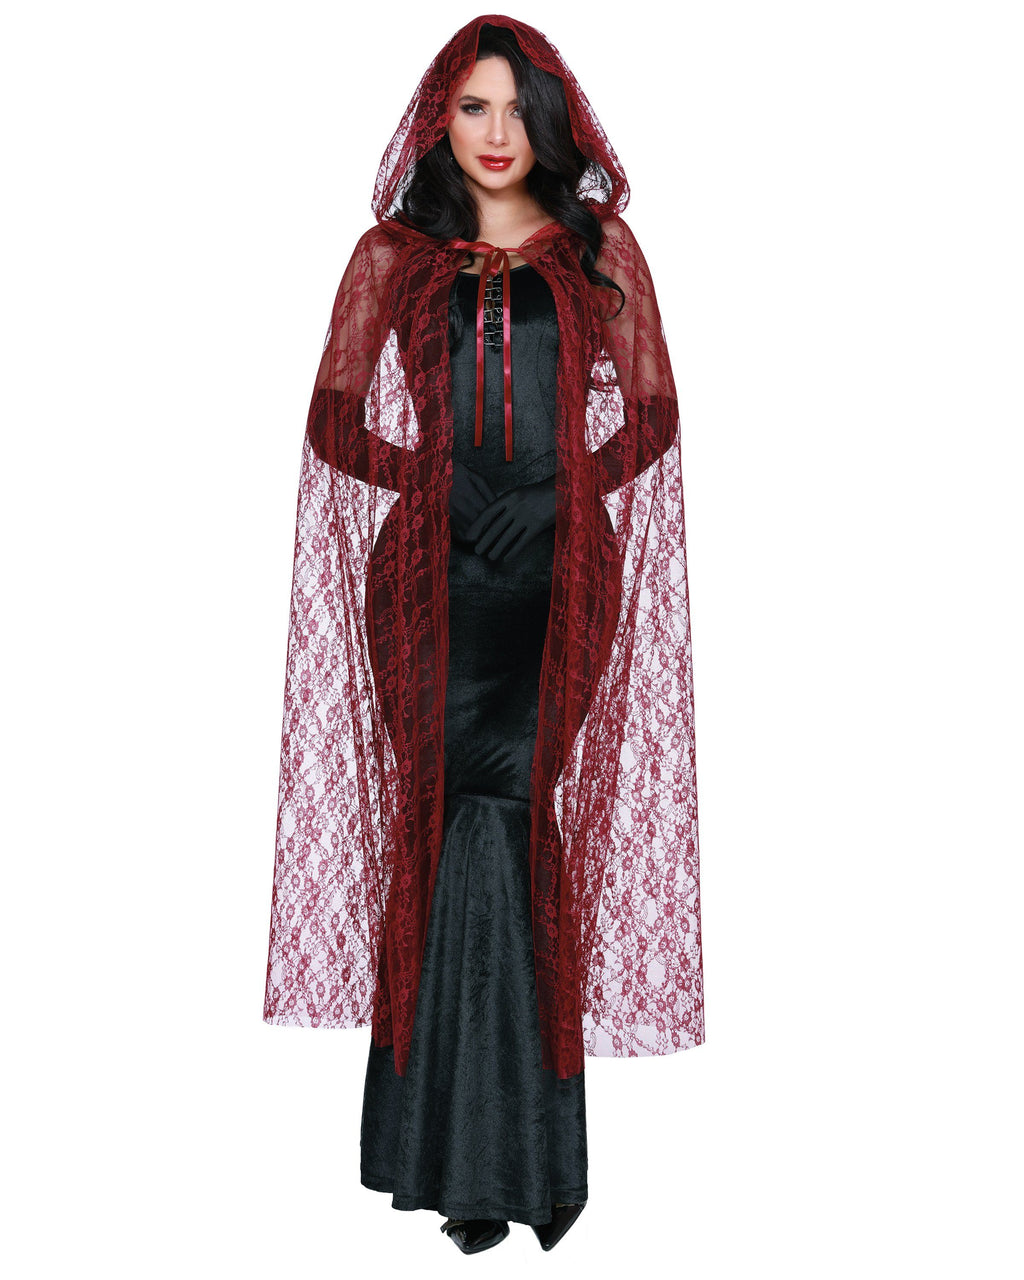 Lace Cape with Hood Costume Accessory Dreamgirl Costume One Size Garnet